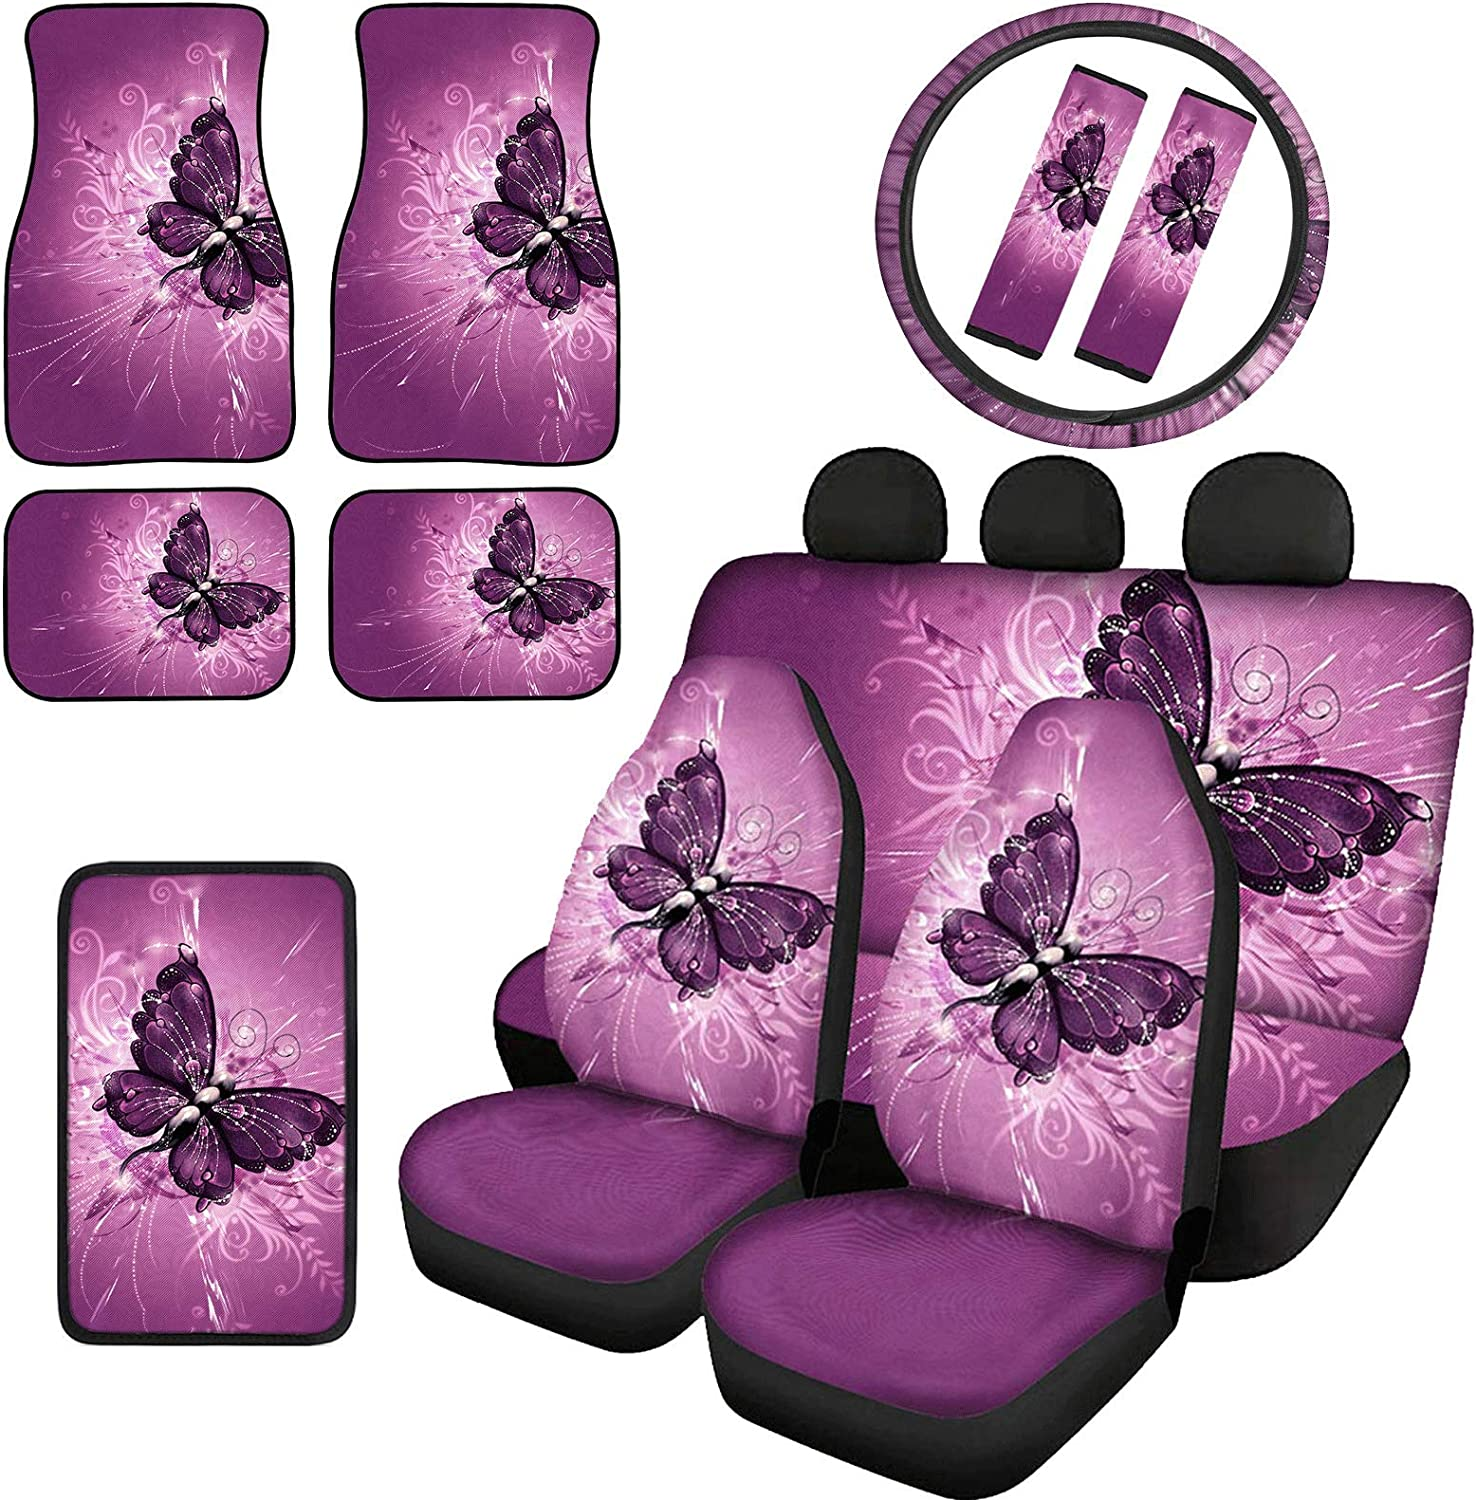 COEQINE Butterfly Super beauty product restock Fashionable quality top Print Car Seat Covers Full for Set Women Anti-